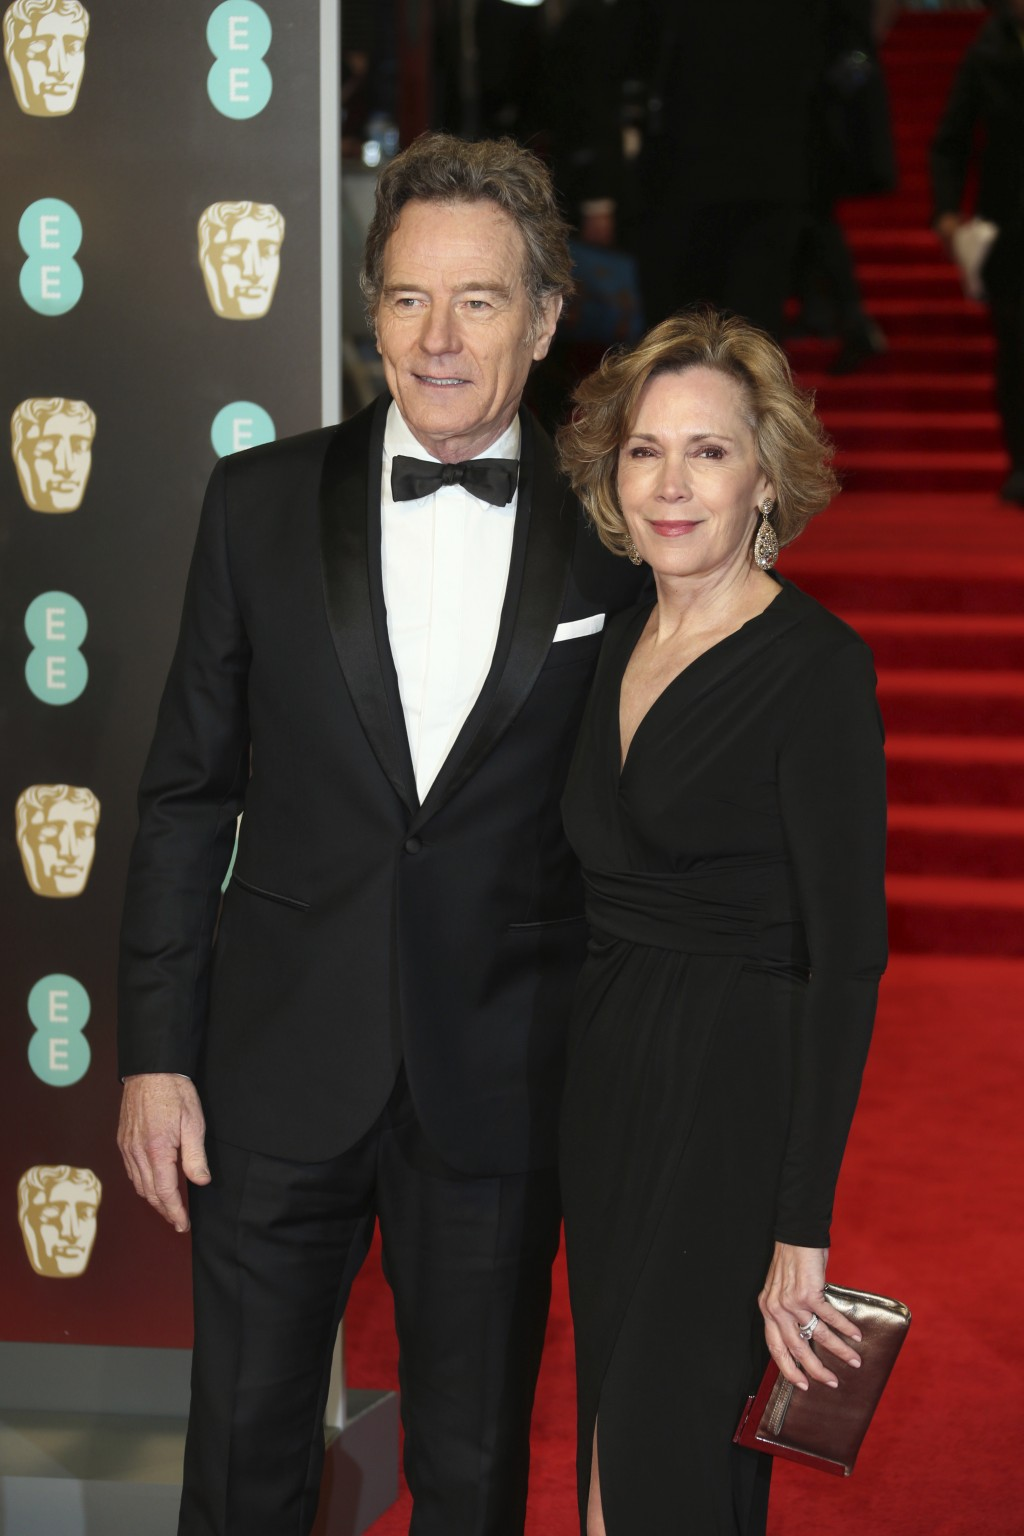 Actor Bryan Cranston and Robin Dearden pose for photographers upon arrival at the BAFTA 2018 Awards in London, Sunday, Feb. 18, 2018. (Photo by Joel C...